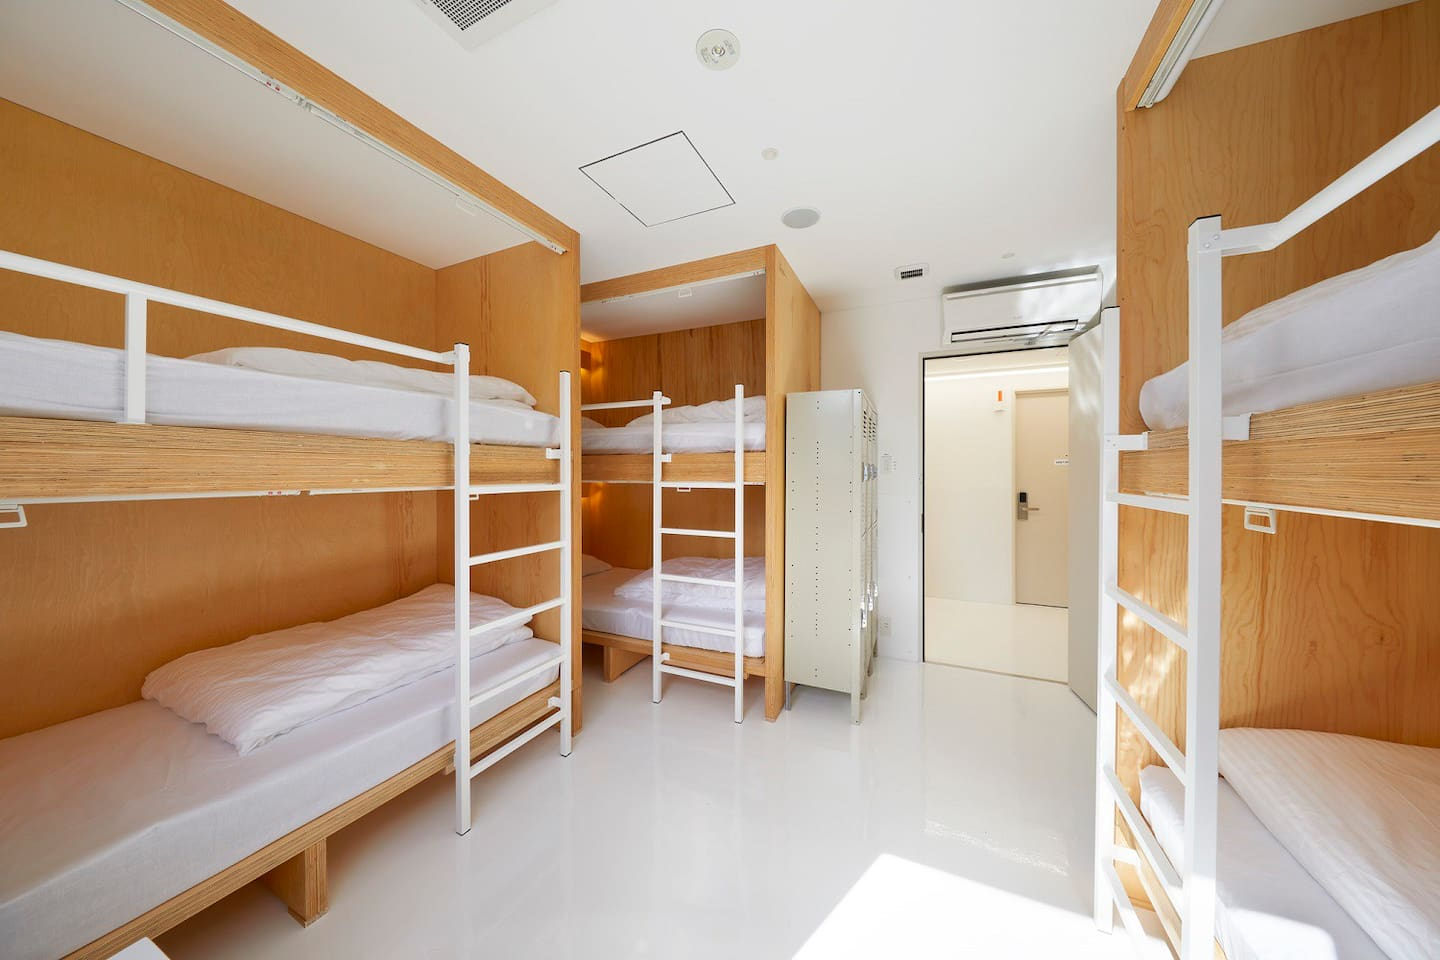 6-bed dormitory room